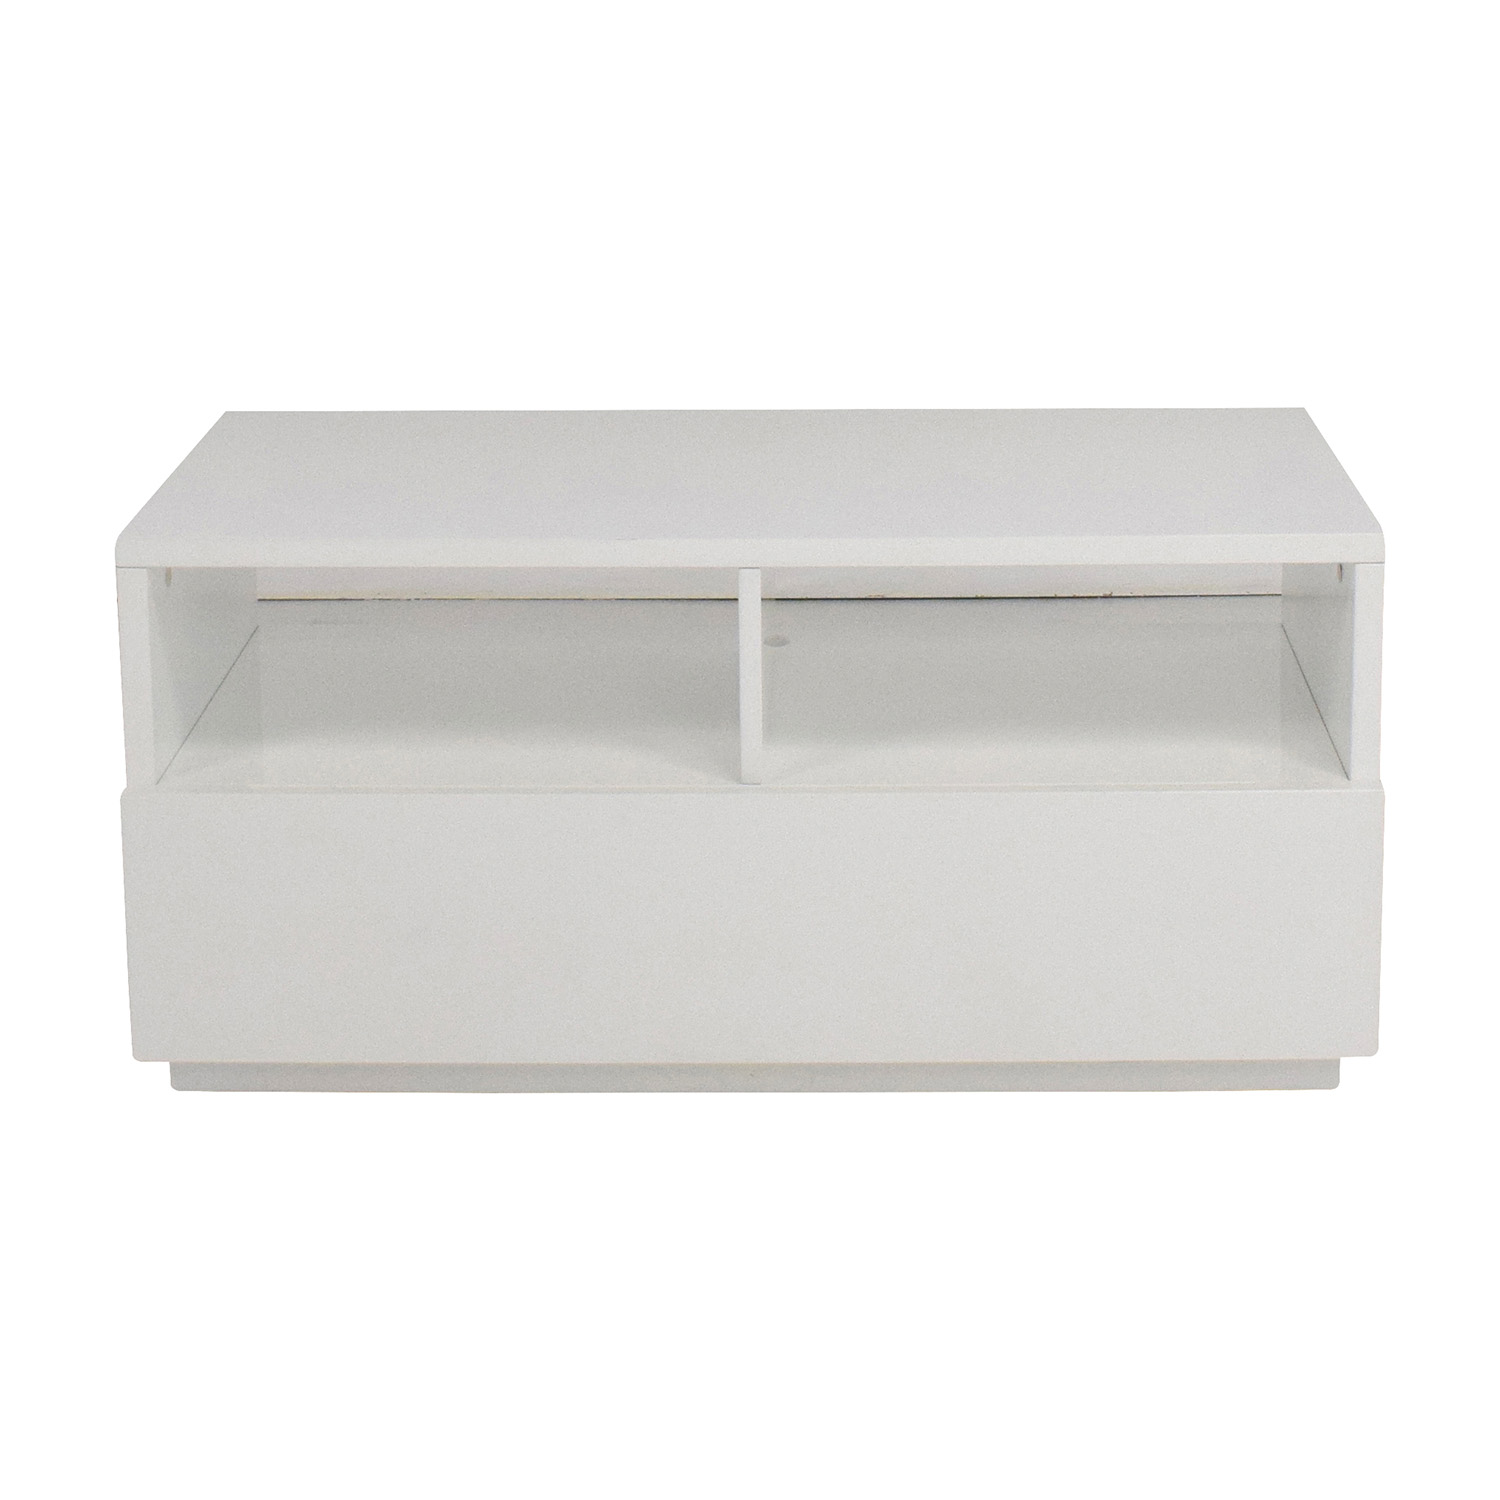 Shop CB2 Chill White Mini Media Console CB2 Media Units ...